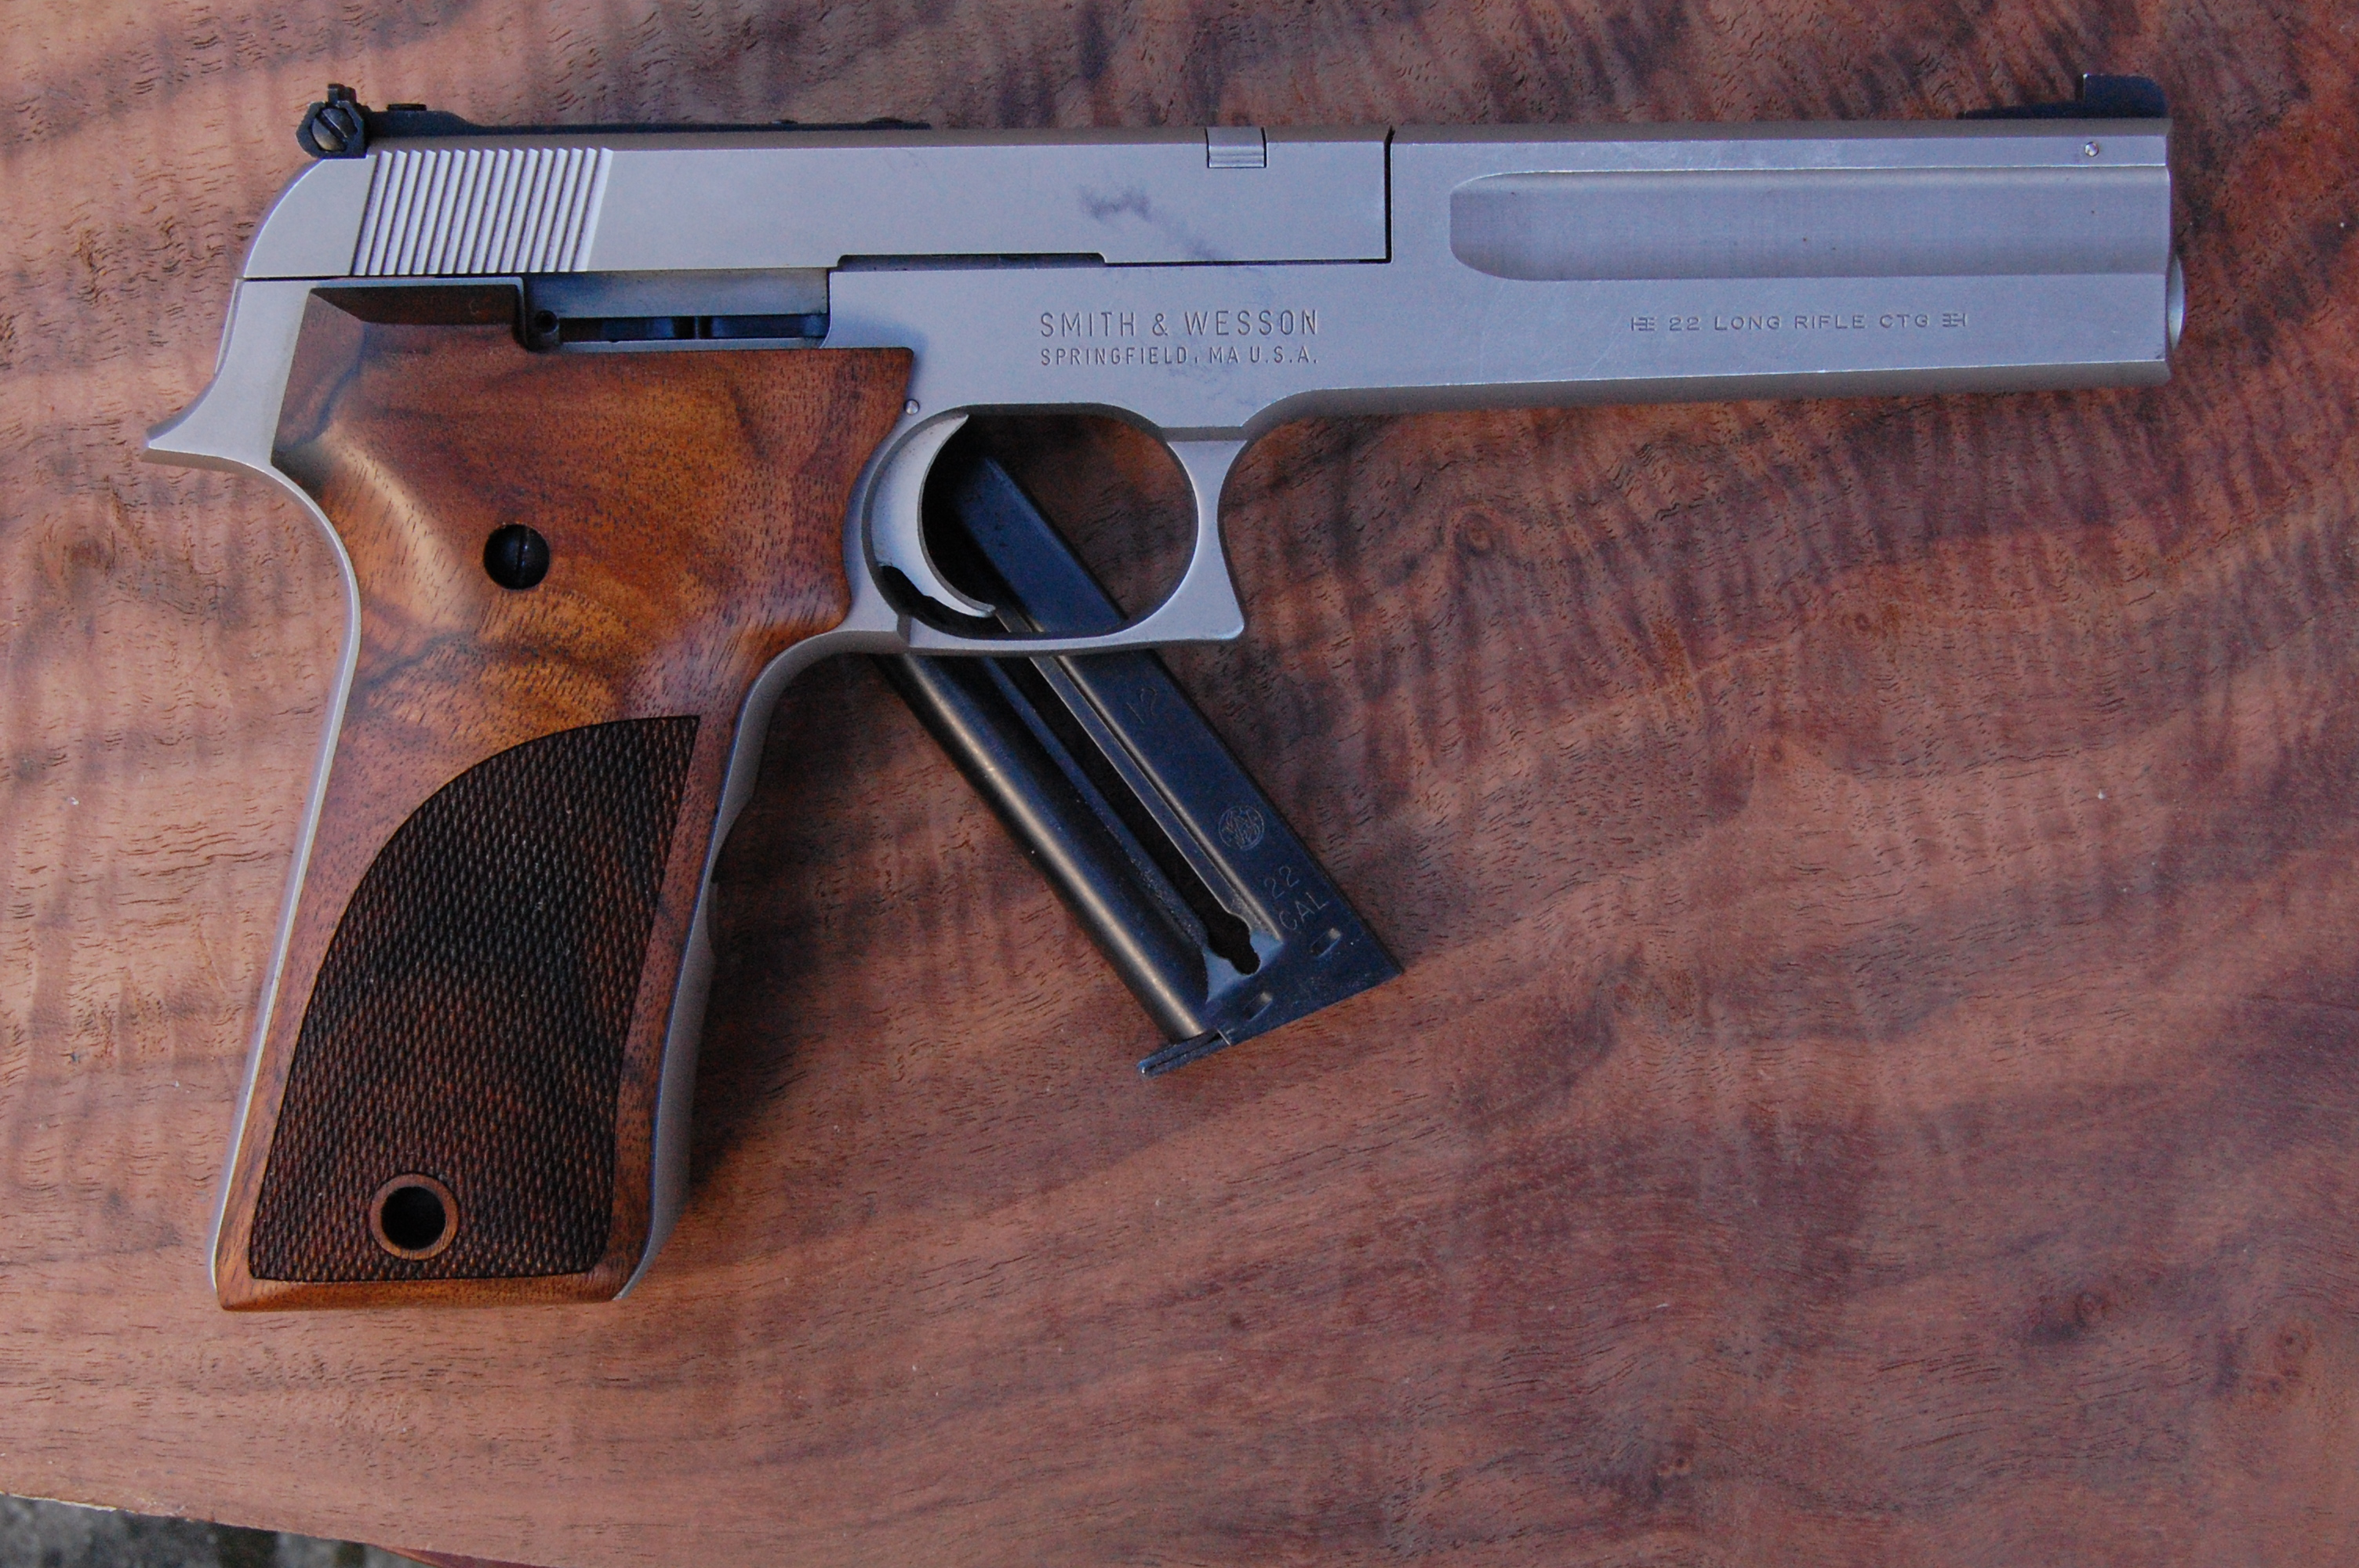 S&W 2206 grips (checkered) - full size